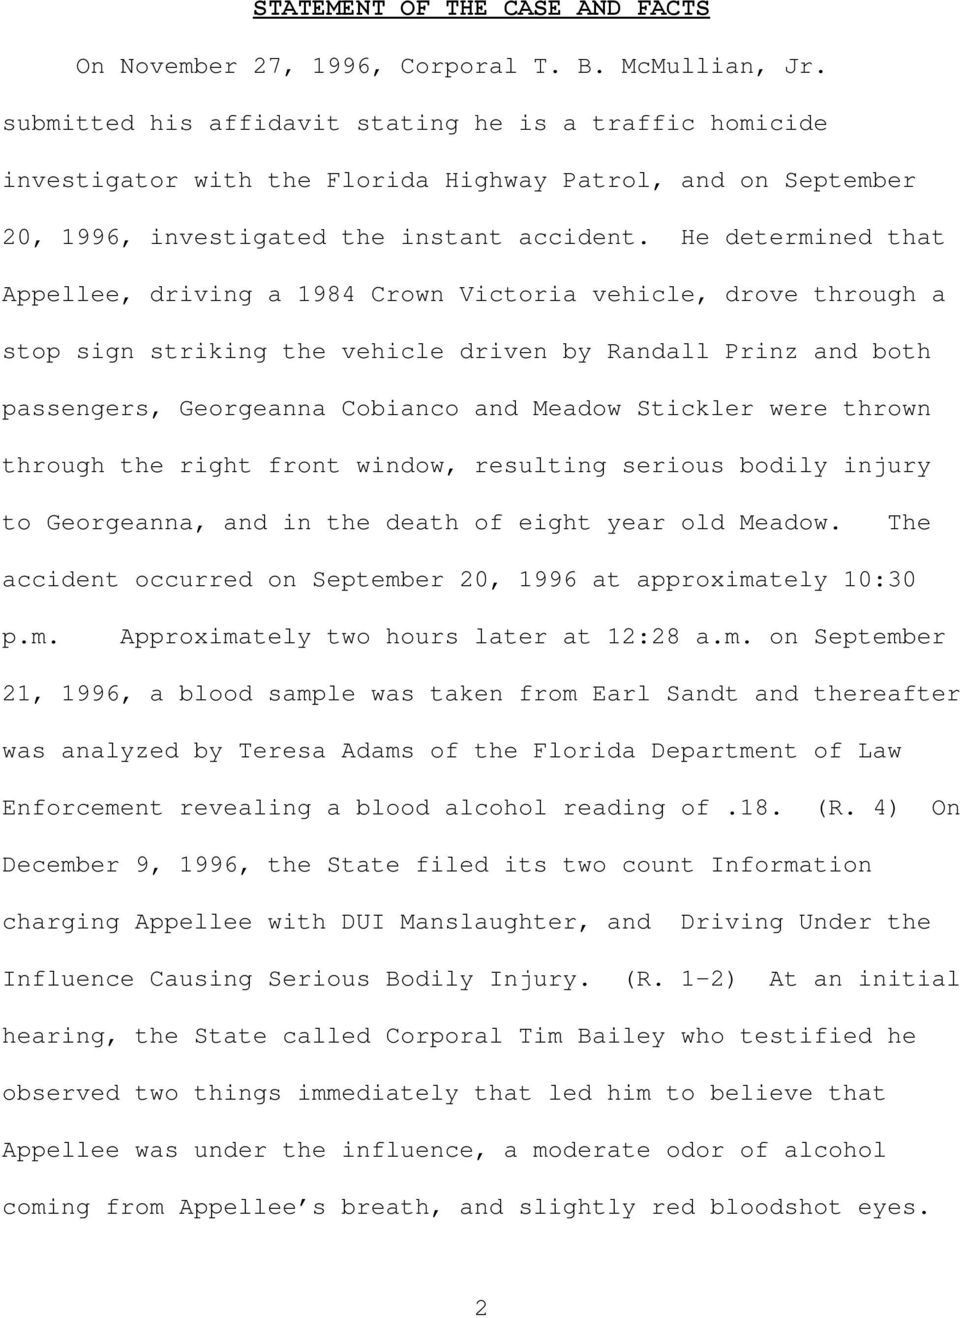 He determined that Appellee, driving a 1984 Crown Victoria vehicle, drove through a stop sign striking the vehicle driven by Randall Prinz and both passengers, Georgeanna Cobianco and Meadow Stickler